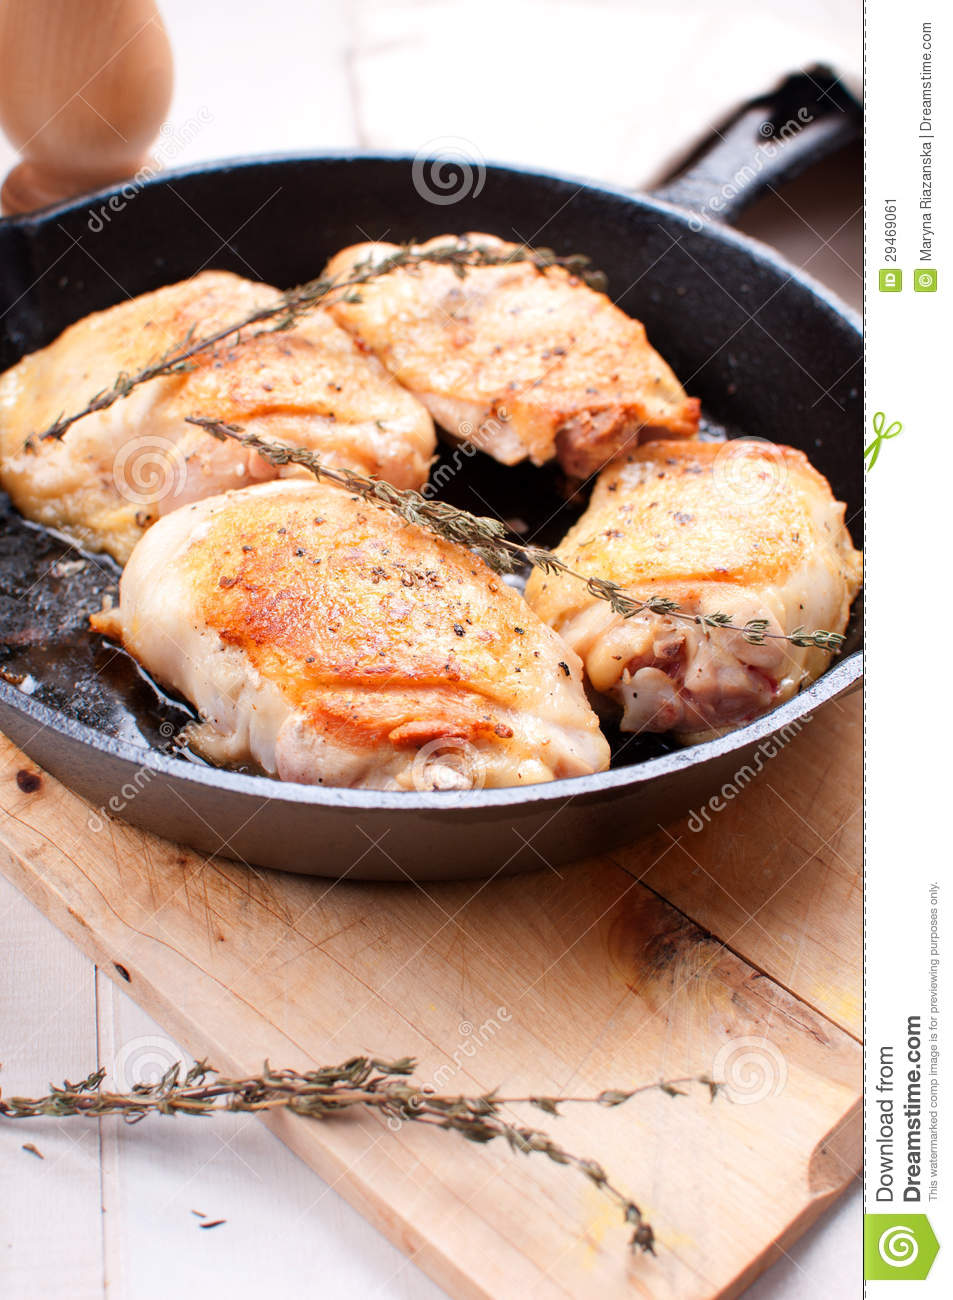 Fried Golden Chicken With Spices And Herbs Stock Image ...